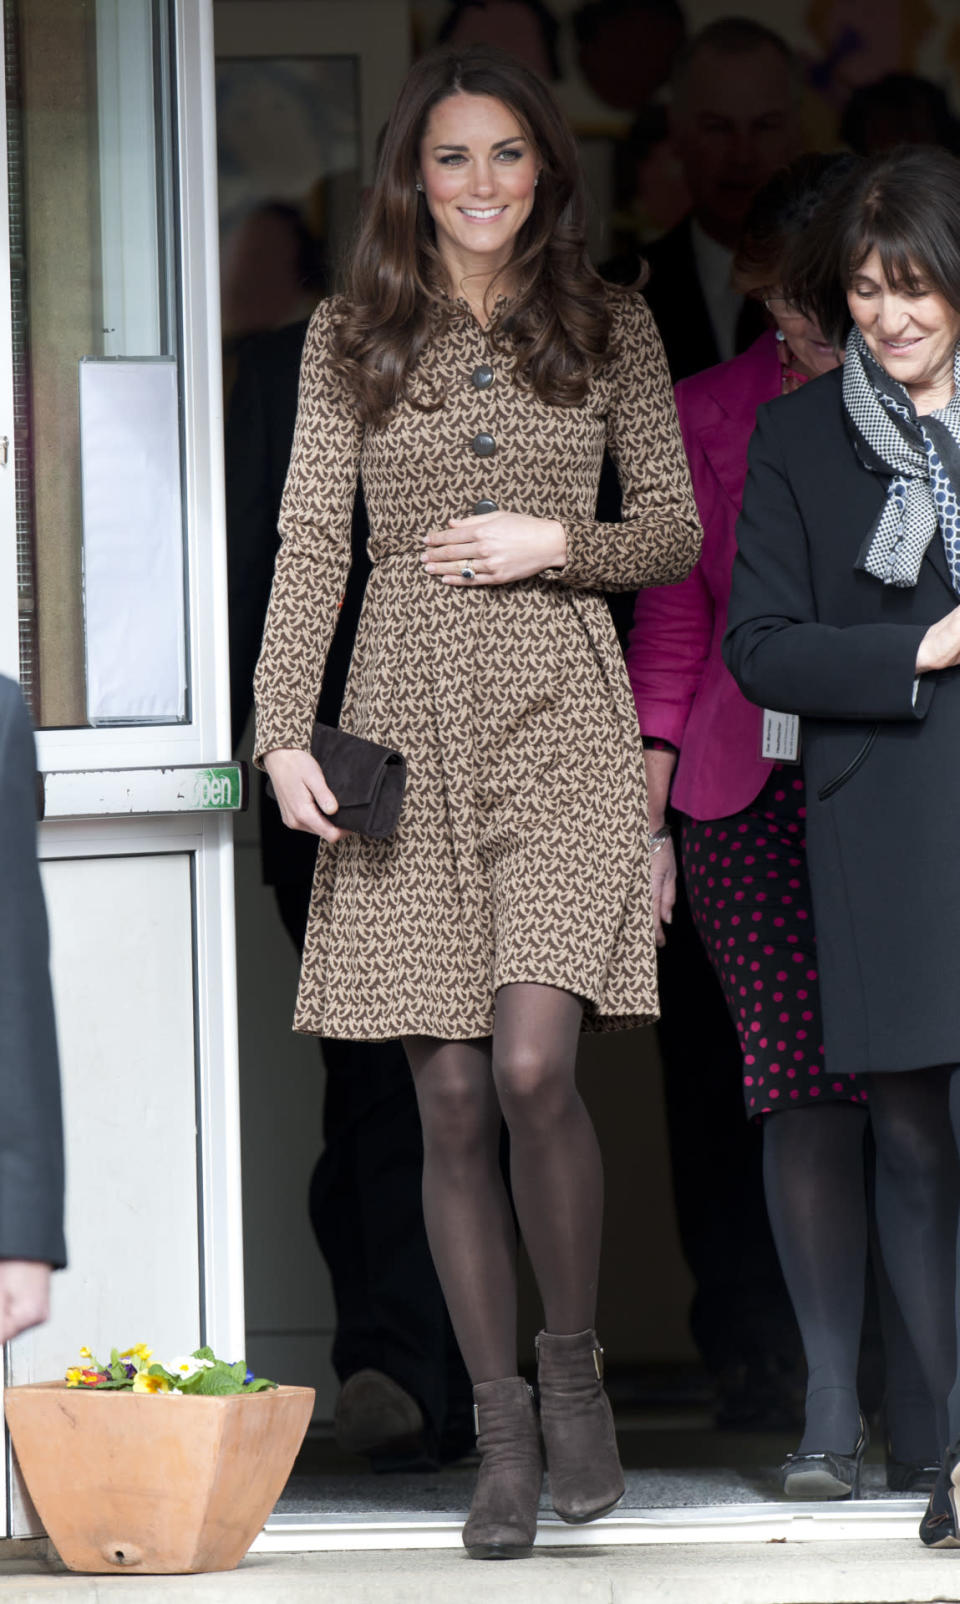 <p>For a trip to Oxford, Kate dressed in a printed Orla Kiely dress with Aquatalia ankle boots and a black clutch.</p><p><i>[Photo: PA]</i></p>